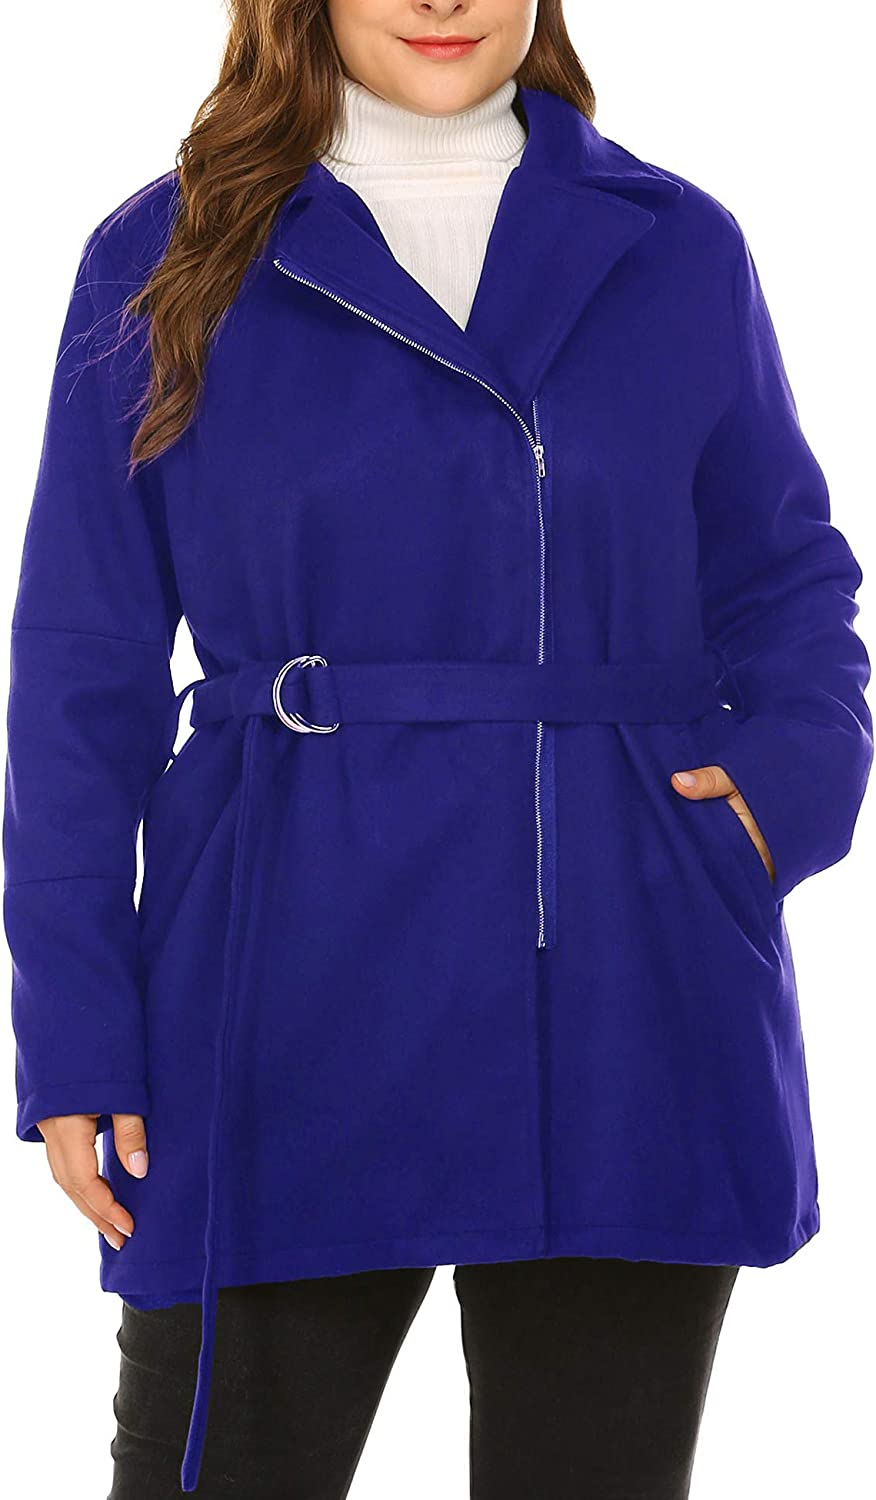 Chigant Womens Plus Size Coat Jacket Winter Trench Coat Notched Lapel Double Breasted Zipper Down Jackets Belt Outercoat